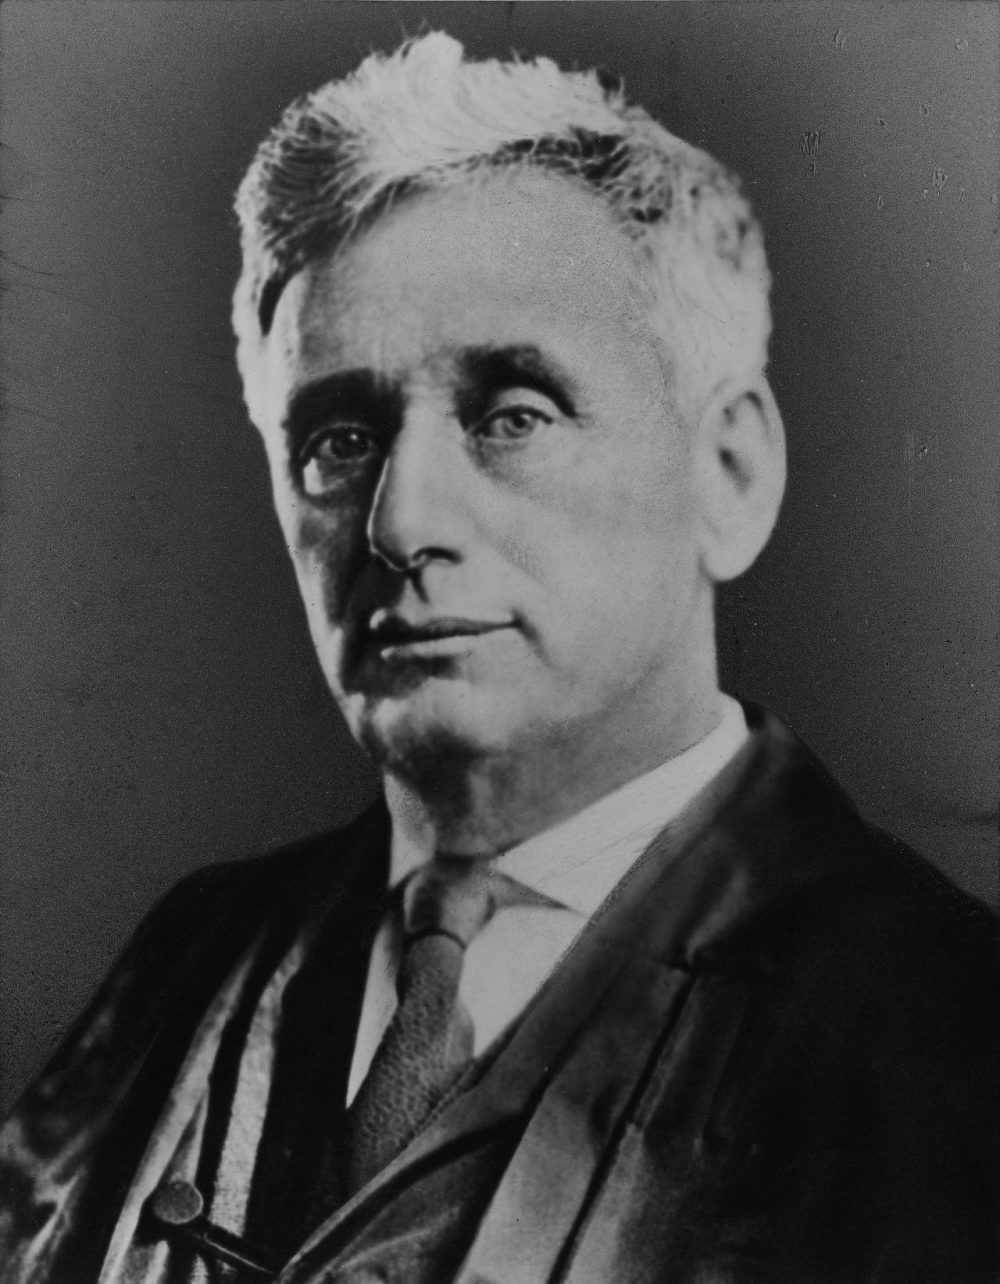 Portrait of American lawyer and Supreme Court Justice Louis Brandeis (1856 - 1941), early 20th Century. (Hulton Archive/Getty Images)